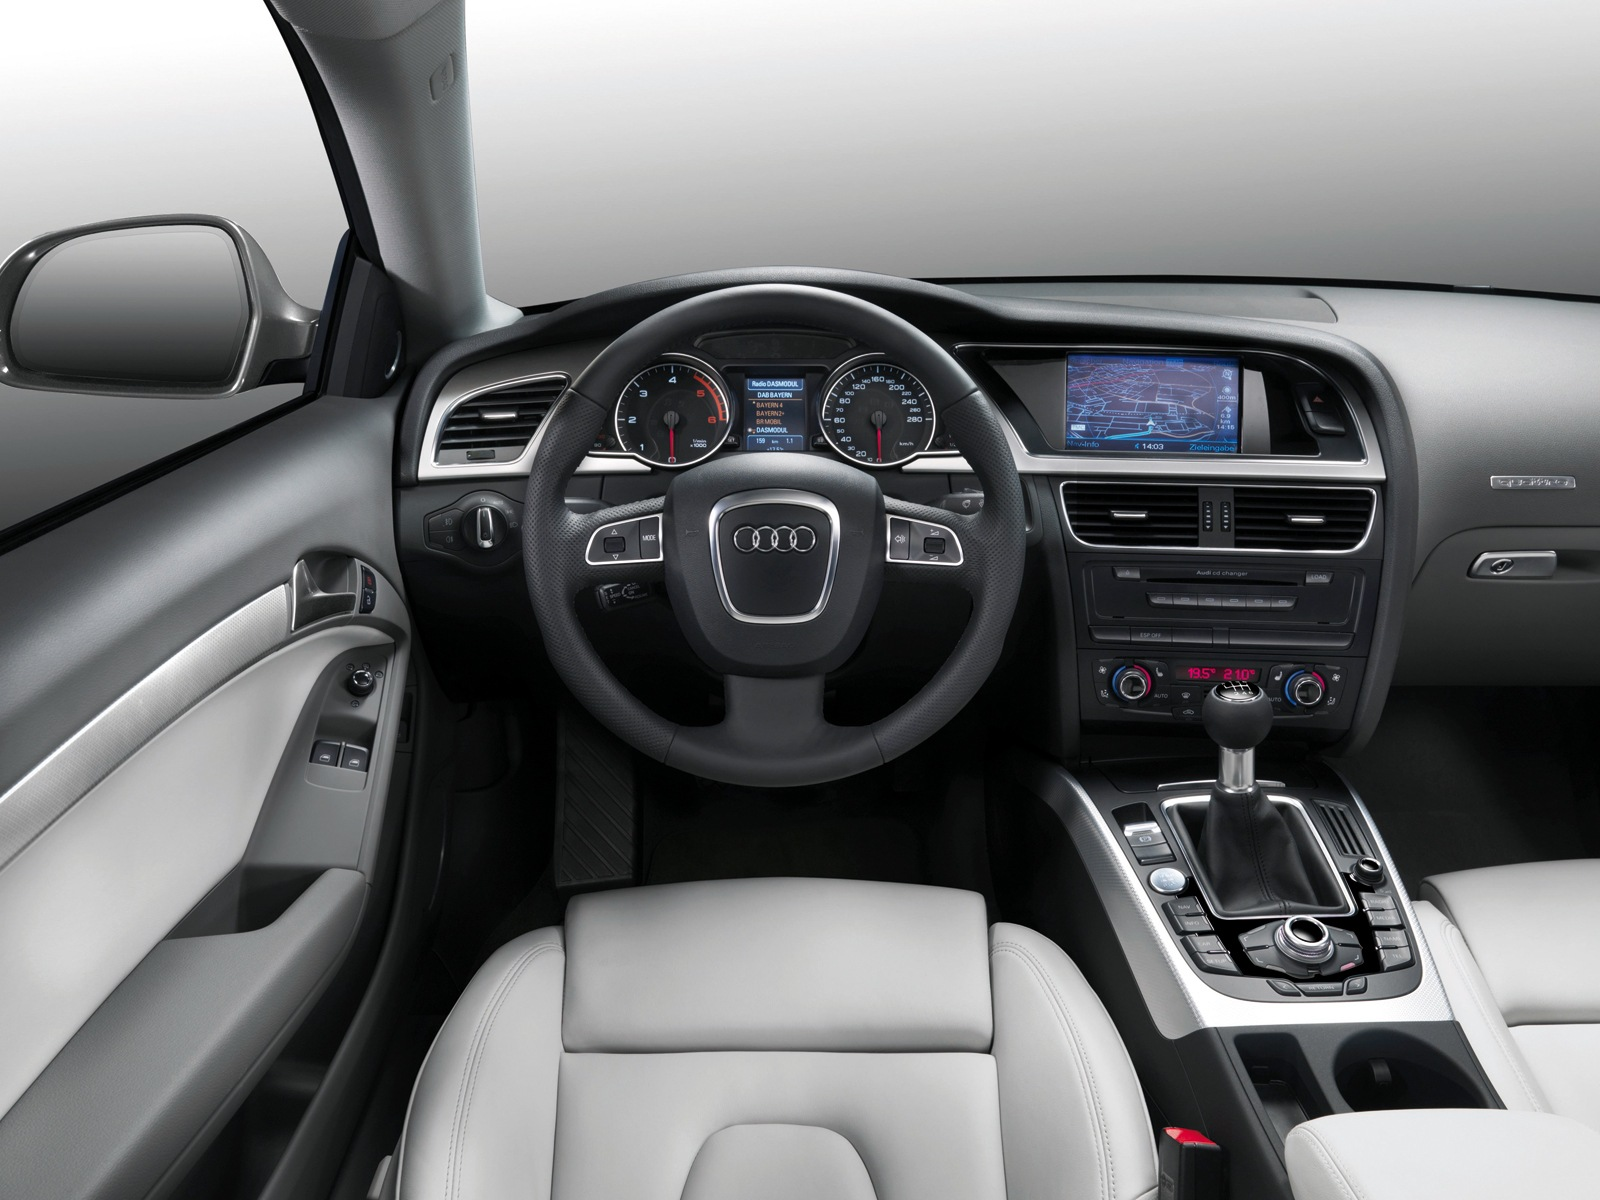 Audi A5 2016 Interior Dashboard